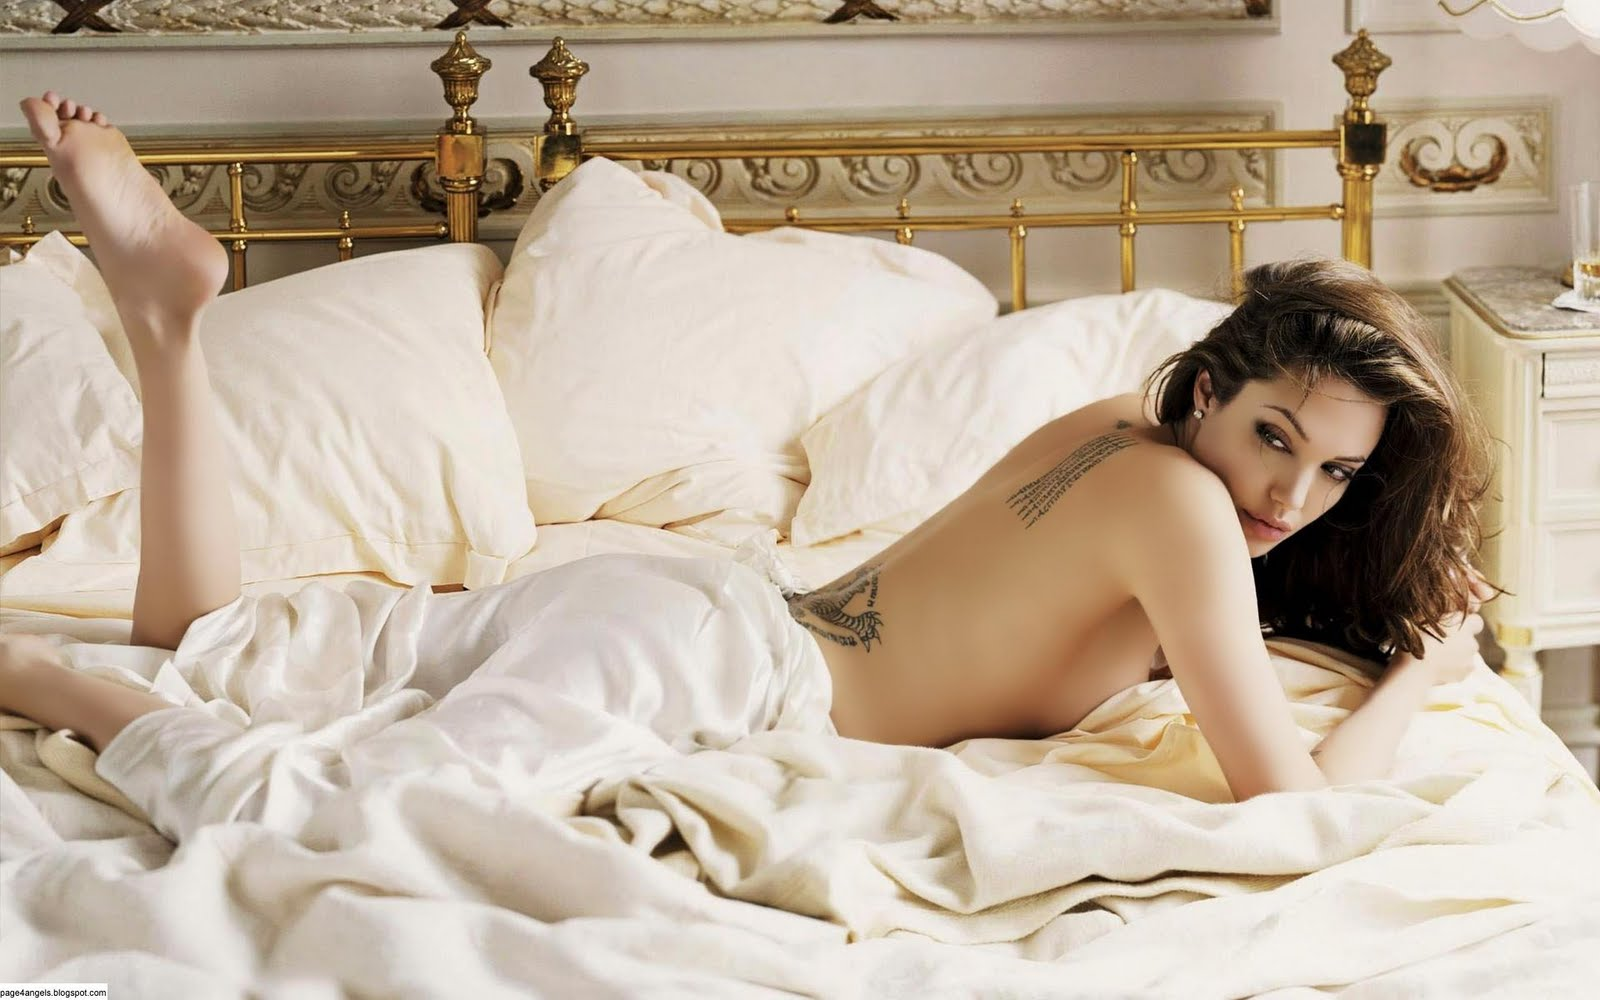 foto linda: angelina jolie hot wallpapers|hollywood celebrity